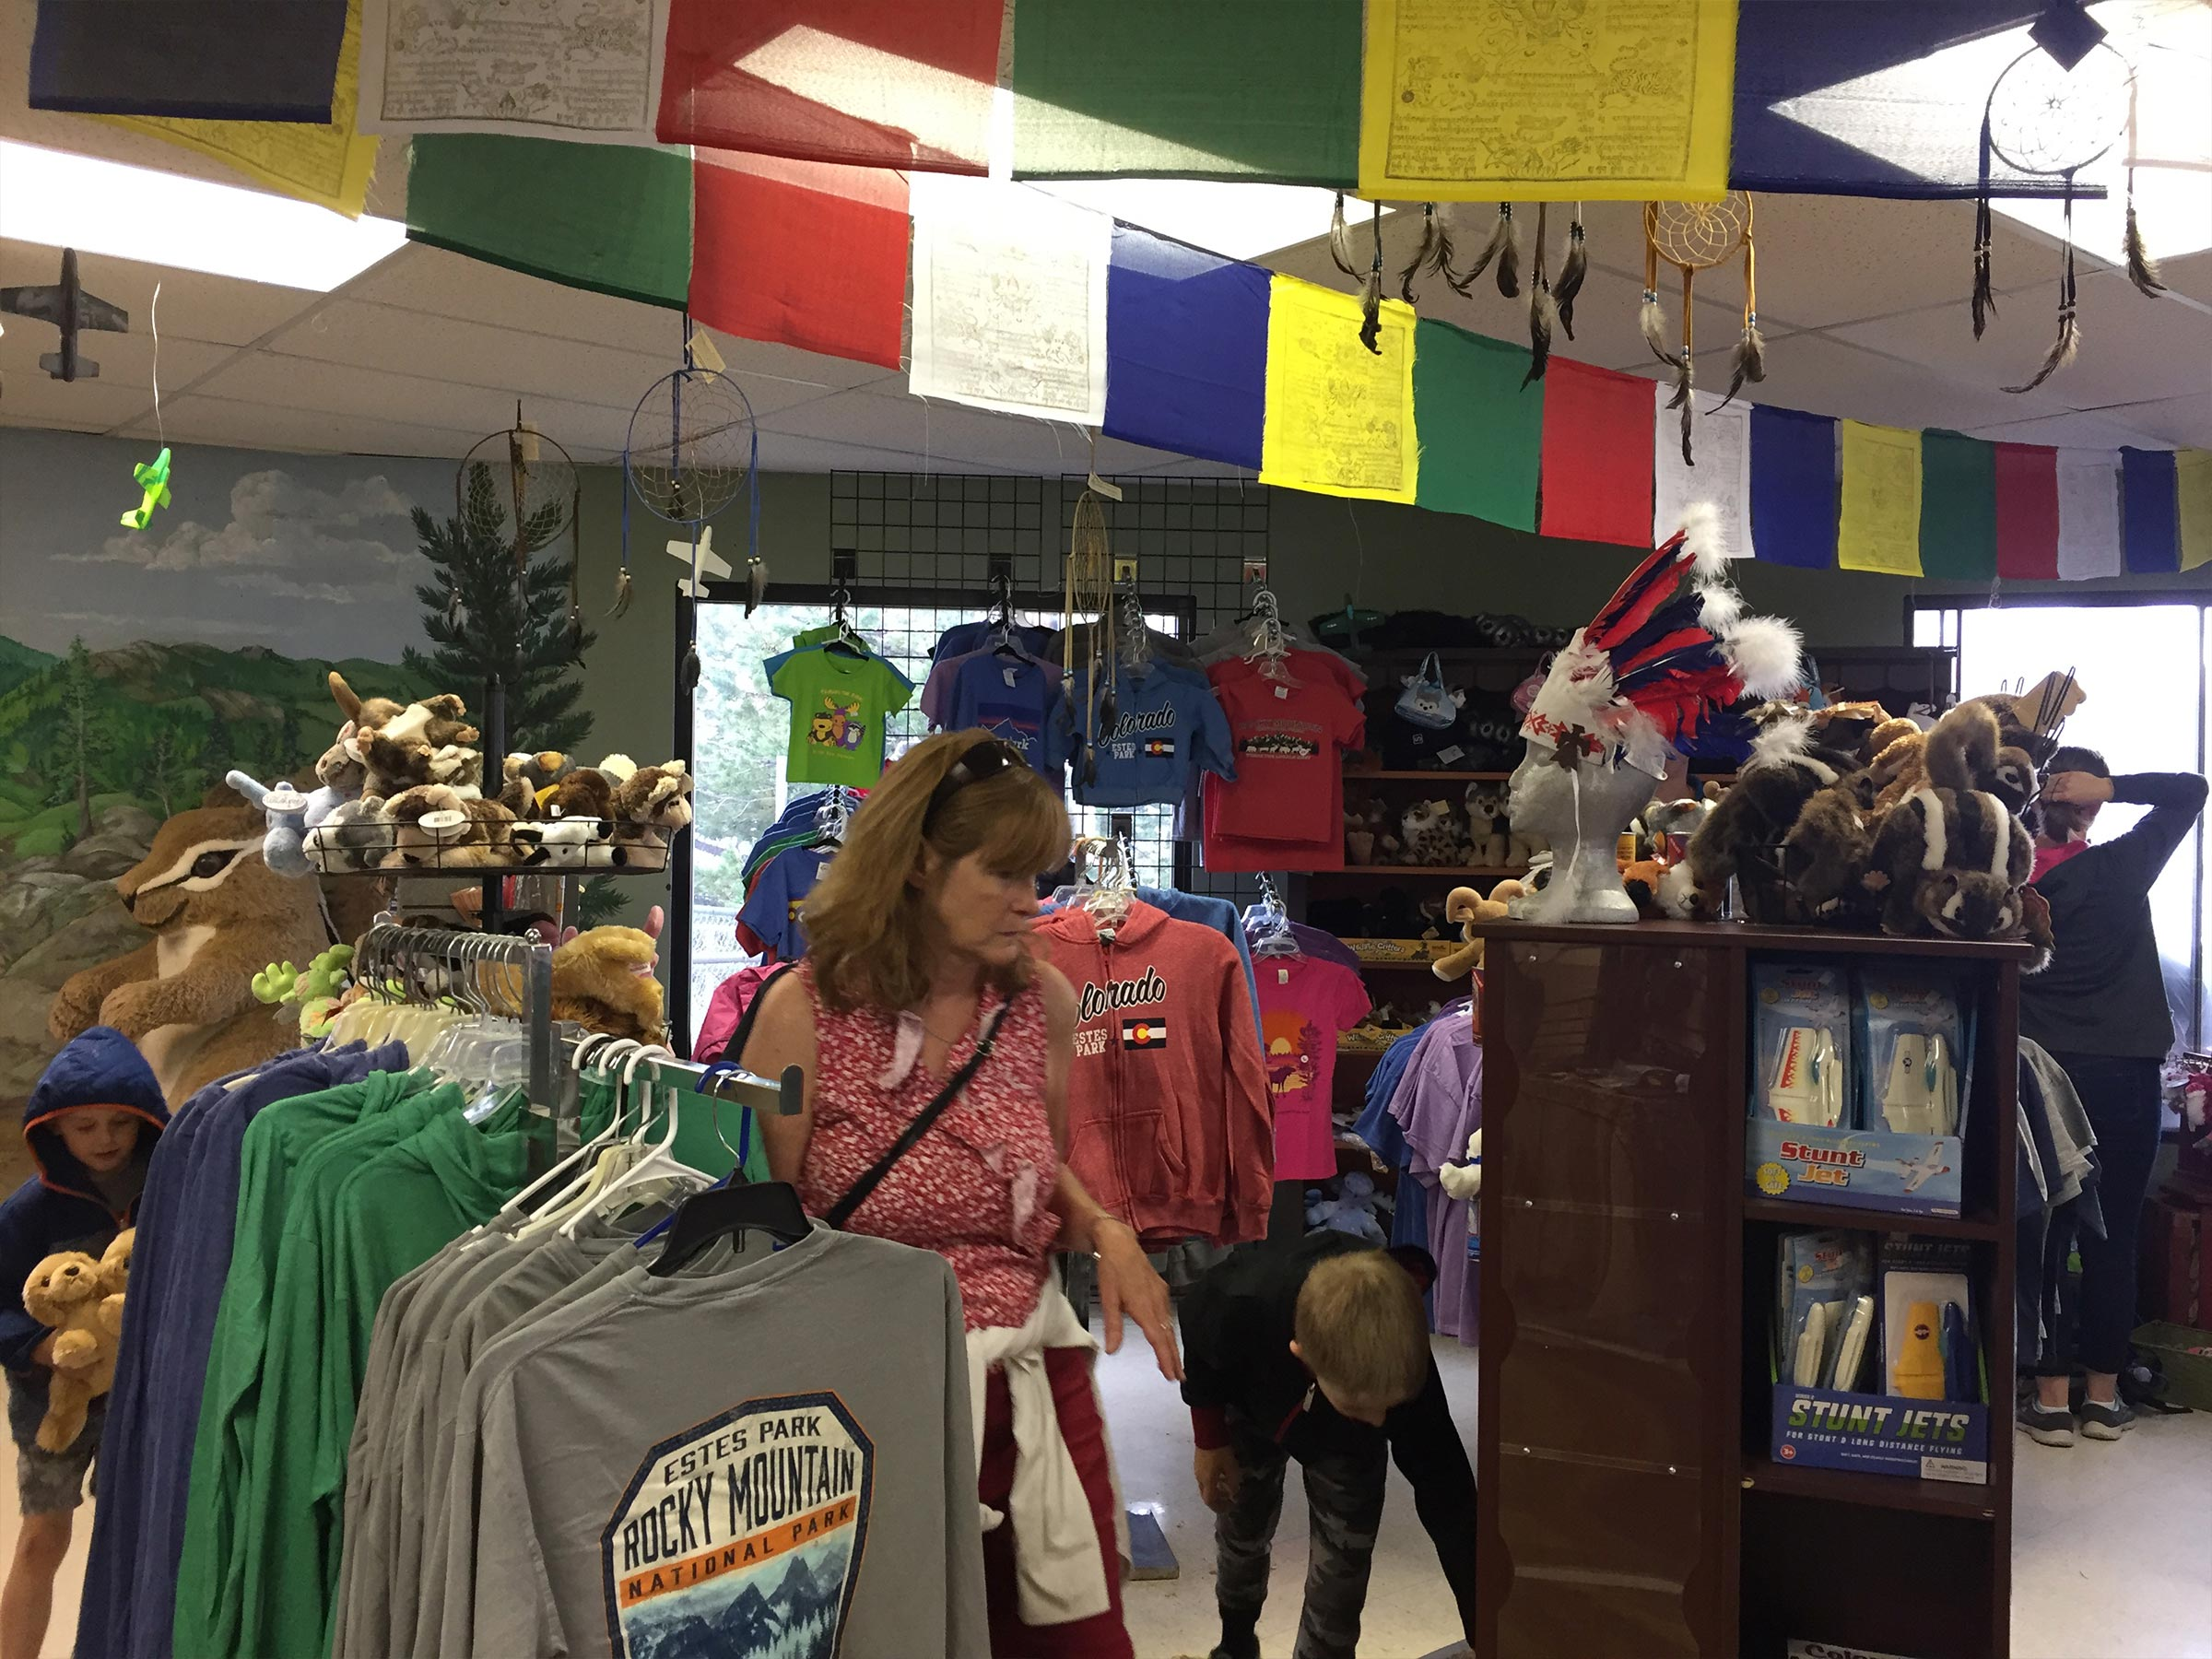 Rocky Mountain View Gift Shop